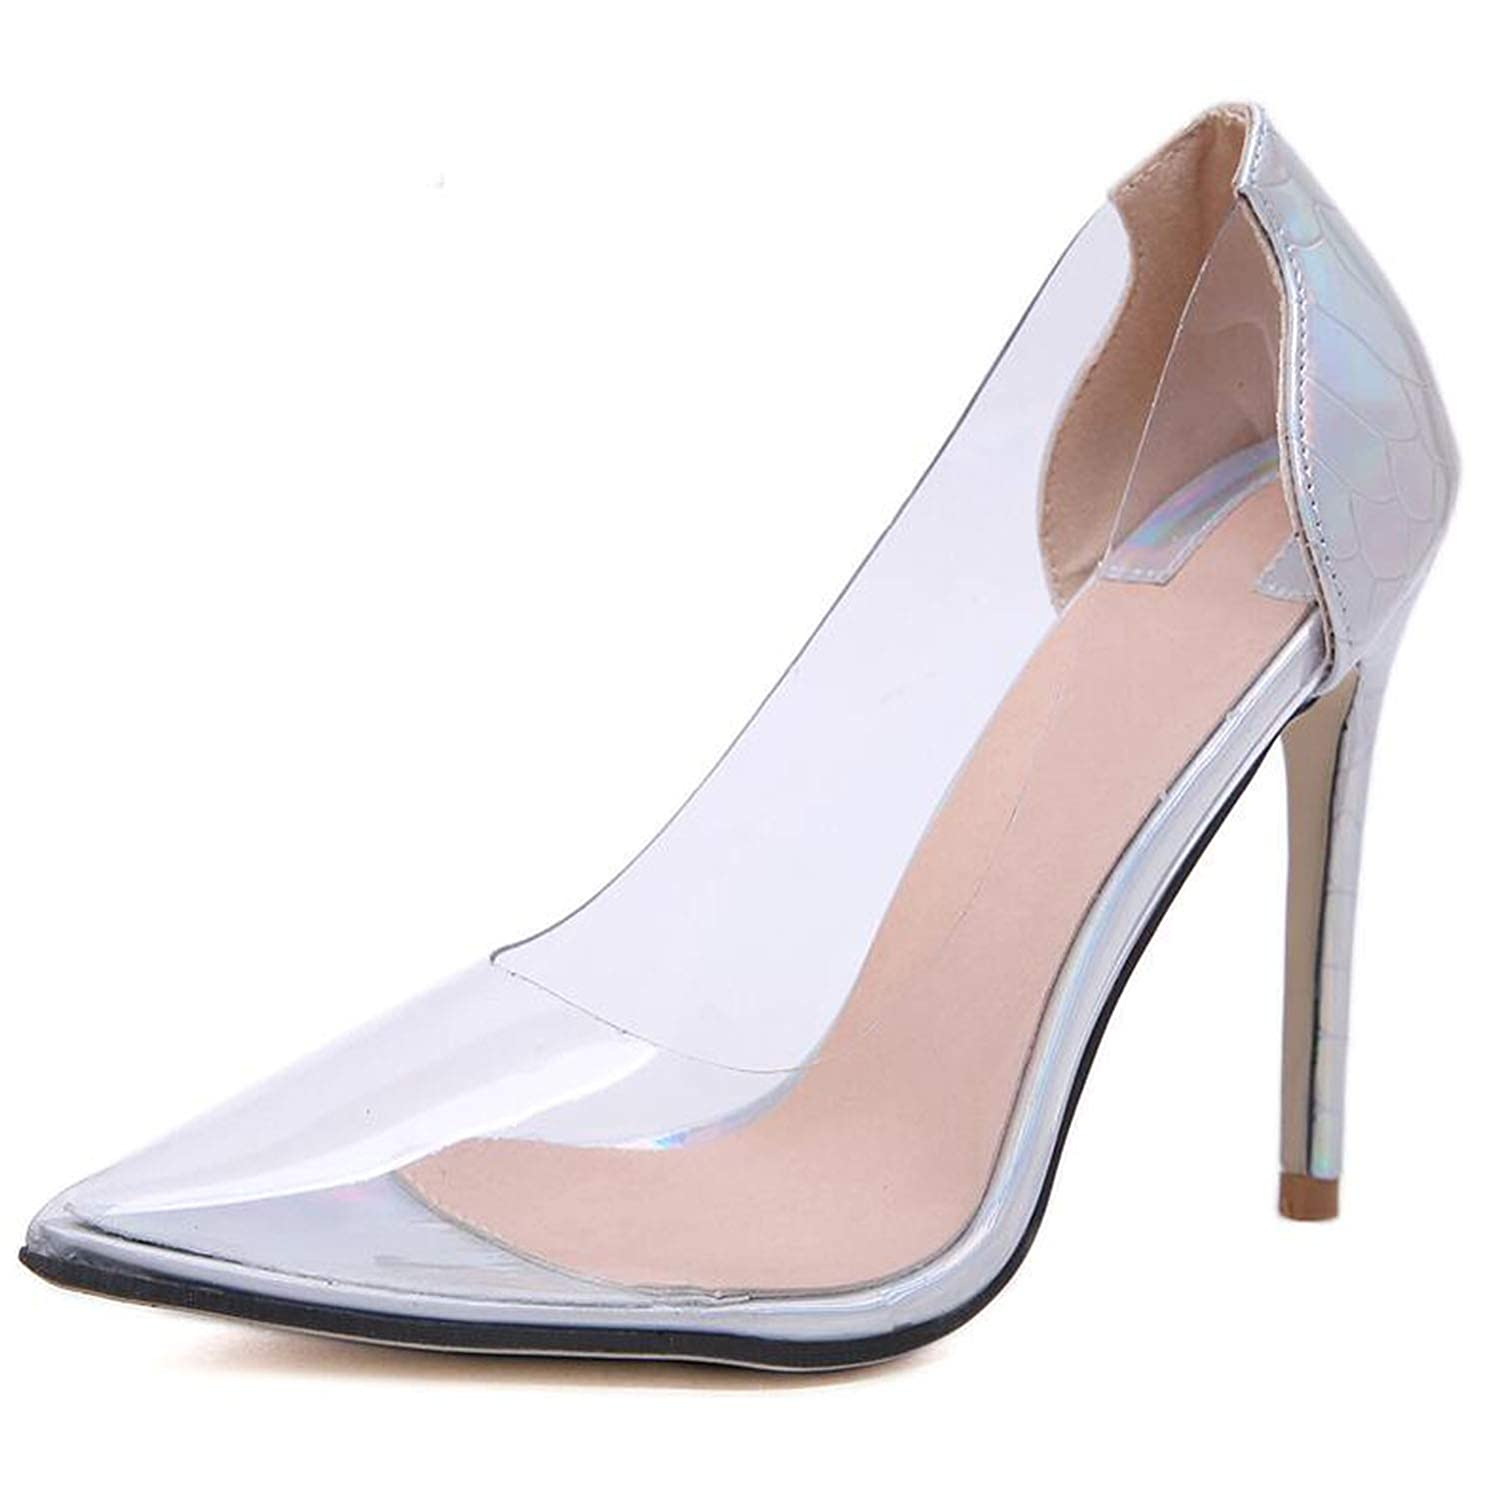 6b3309ac4 Amazon.com | rose flowers Women Pumps 2019 Transparent Super High Heels  Sexy Pointed Toe Slip-on Wedding Party Shoes | Pumps